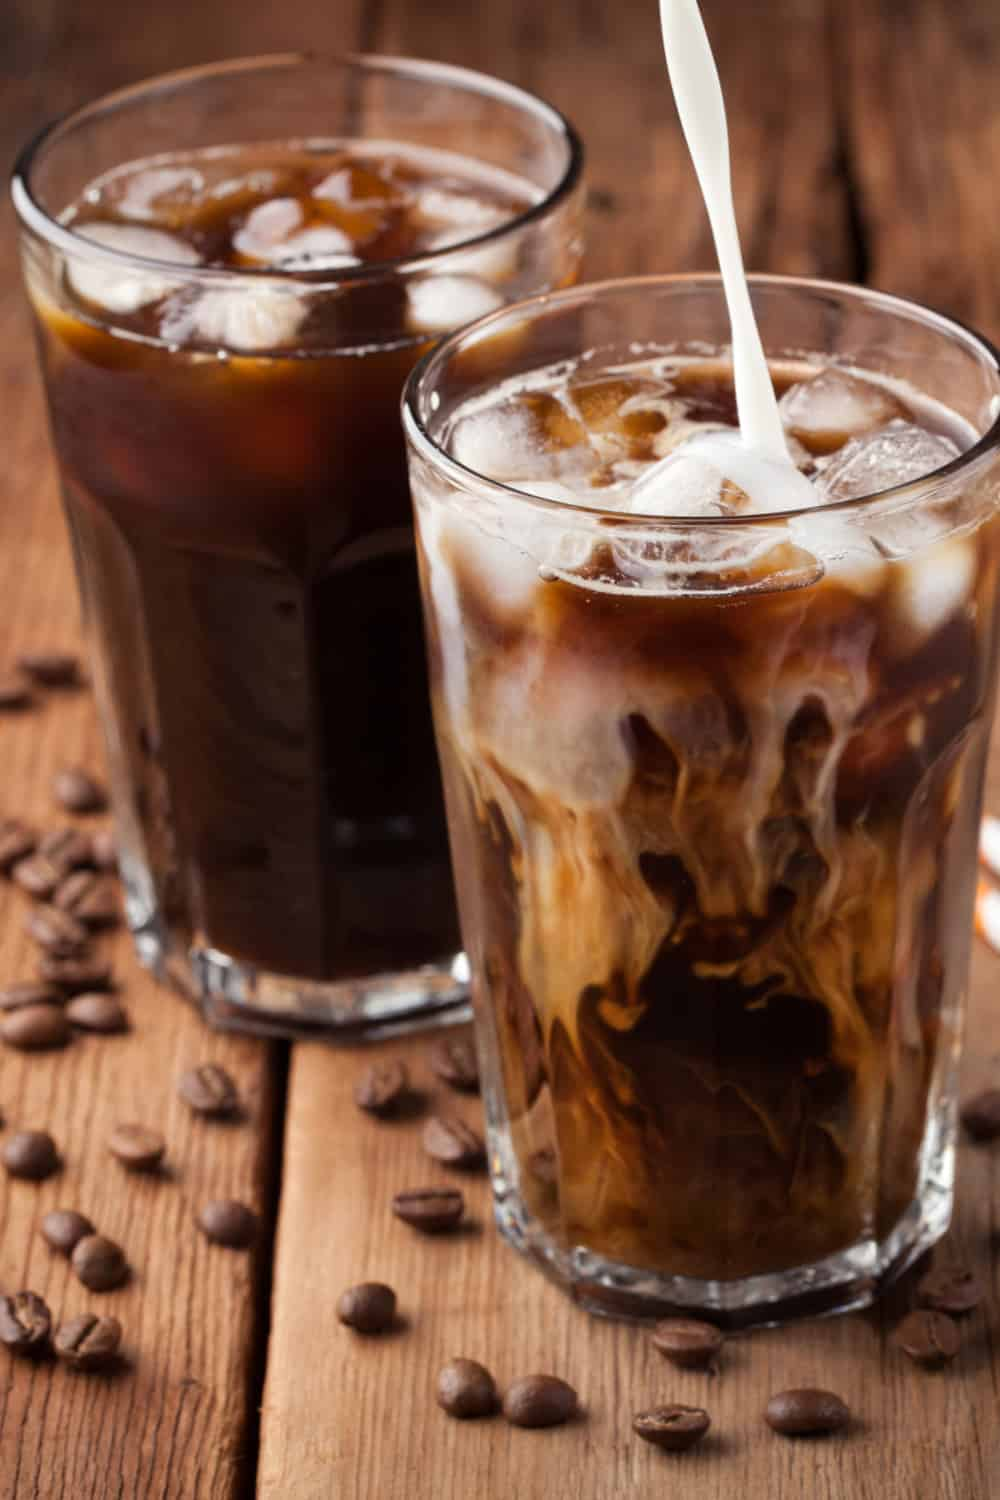 Where did the idea of cold coffee originate